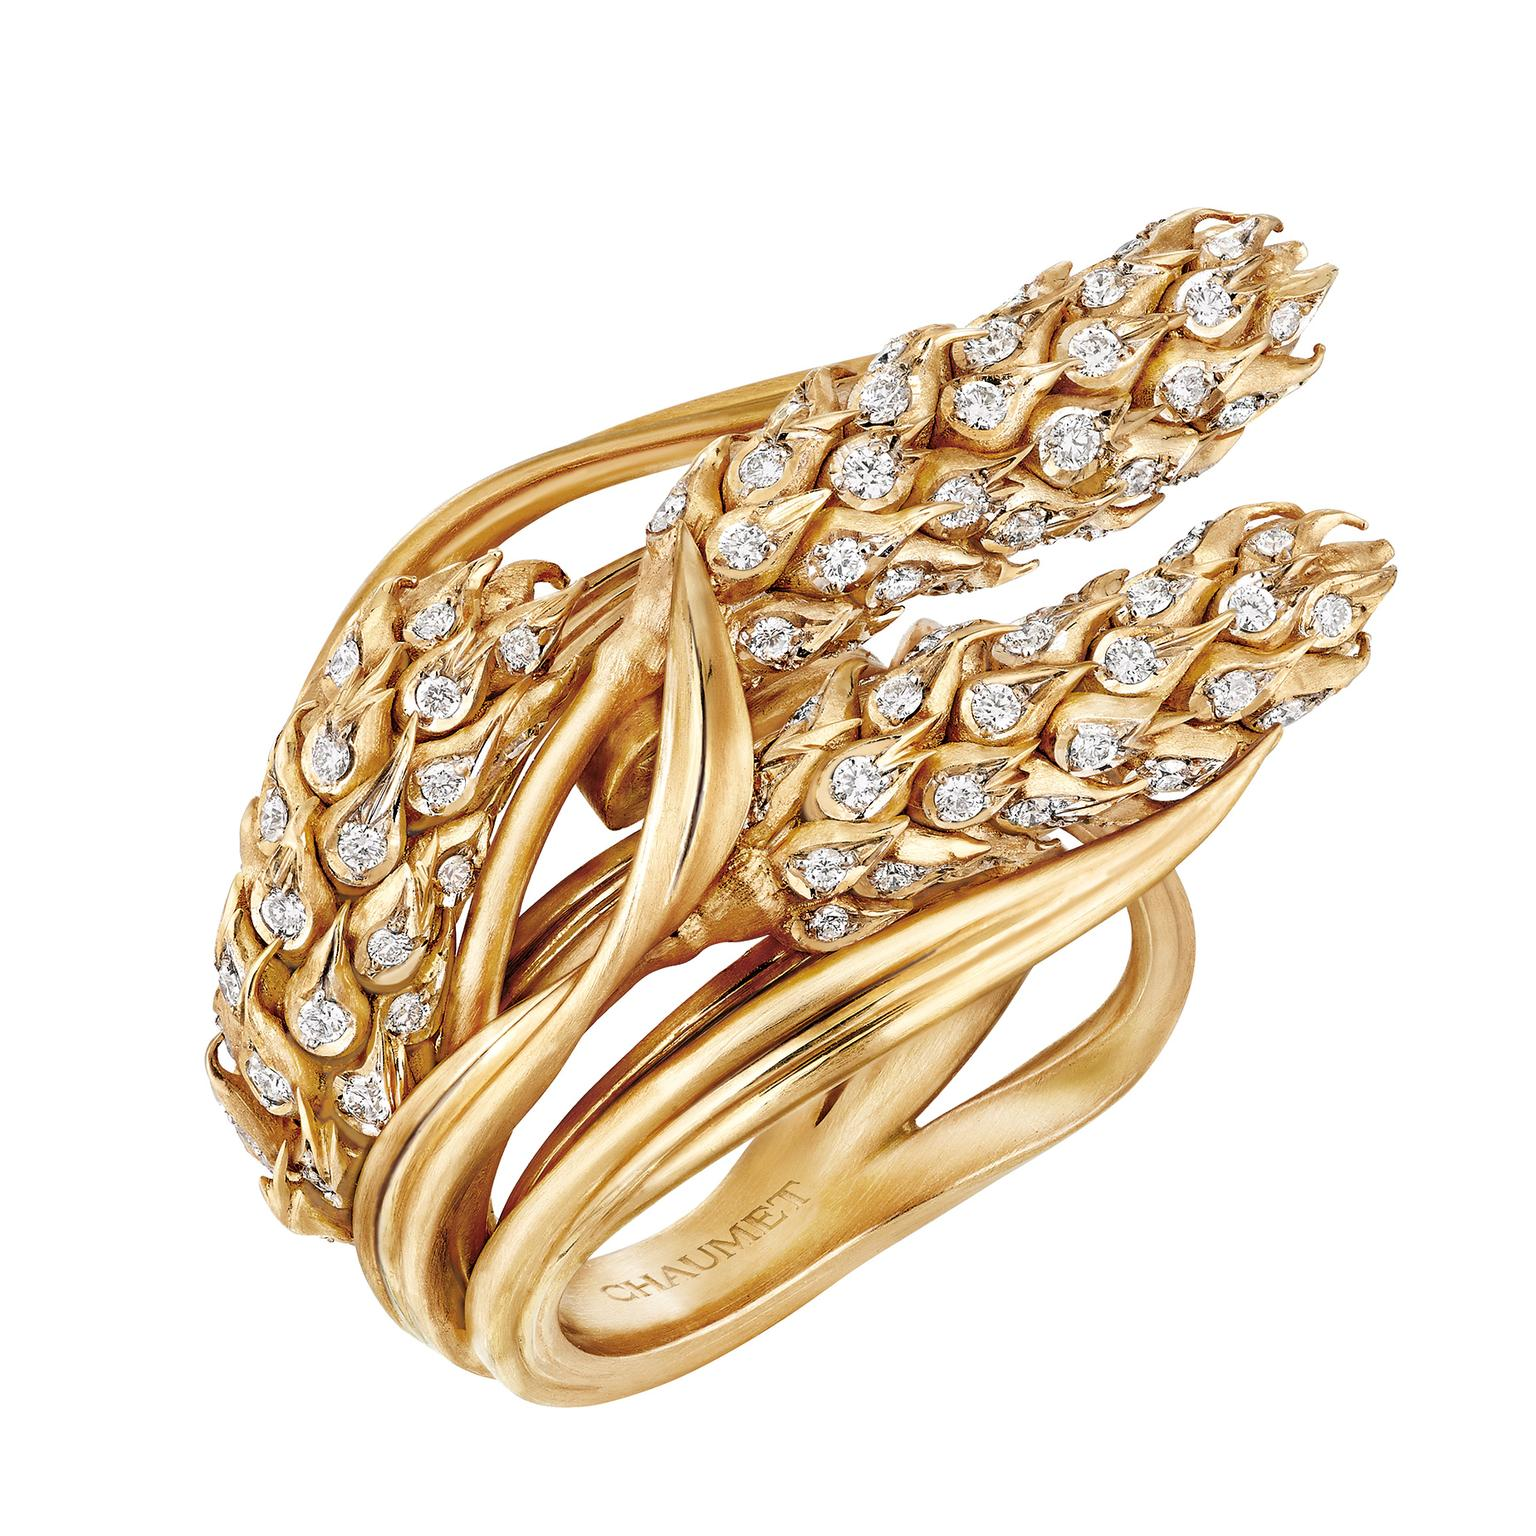 Chaumet L'Épi de Blé wheat ring